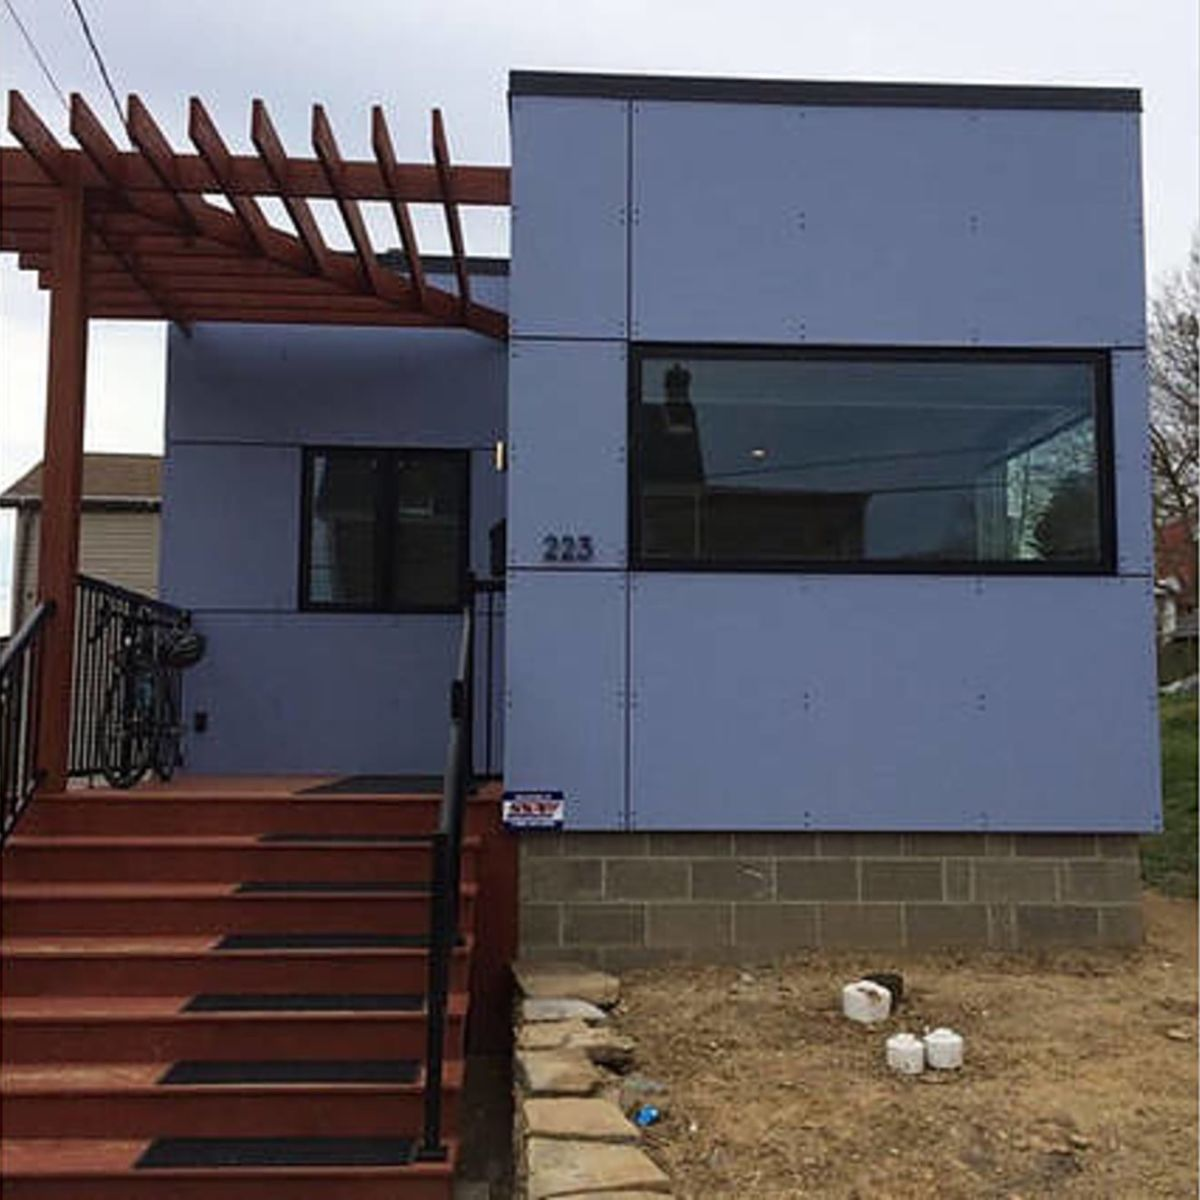 Small House For Rent: Pittsburgh's Only Tiny House